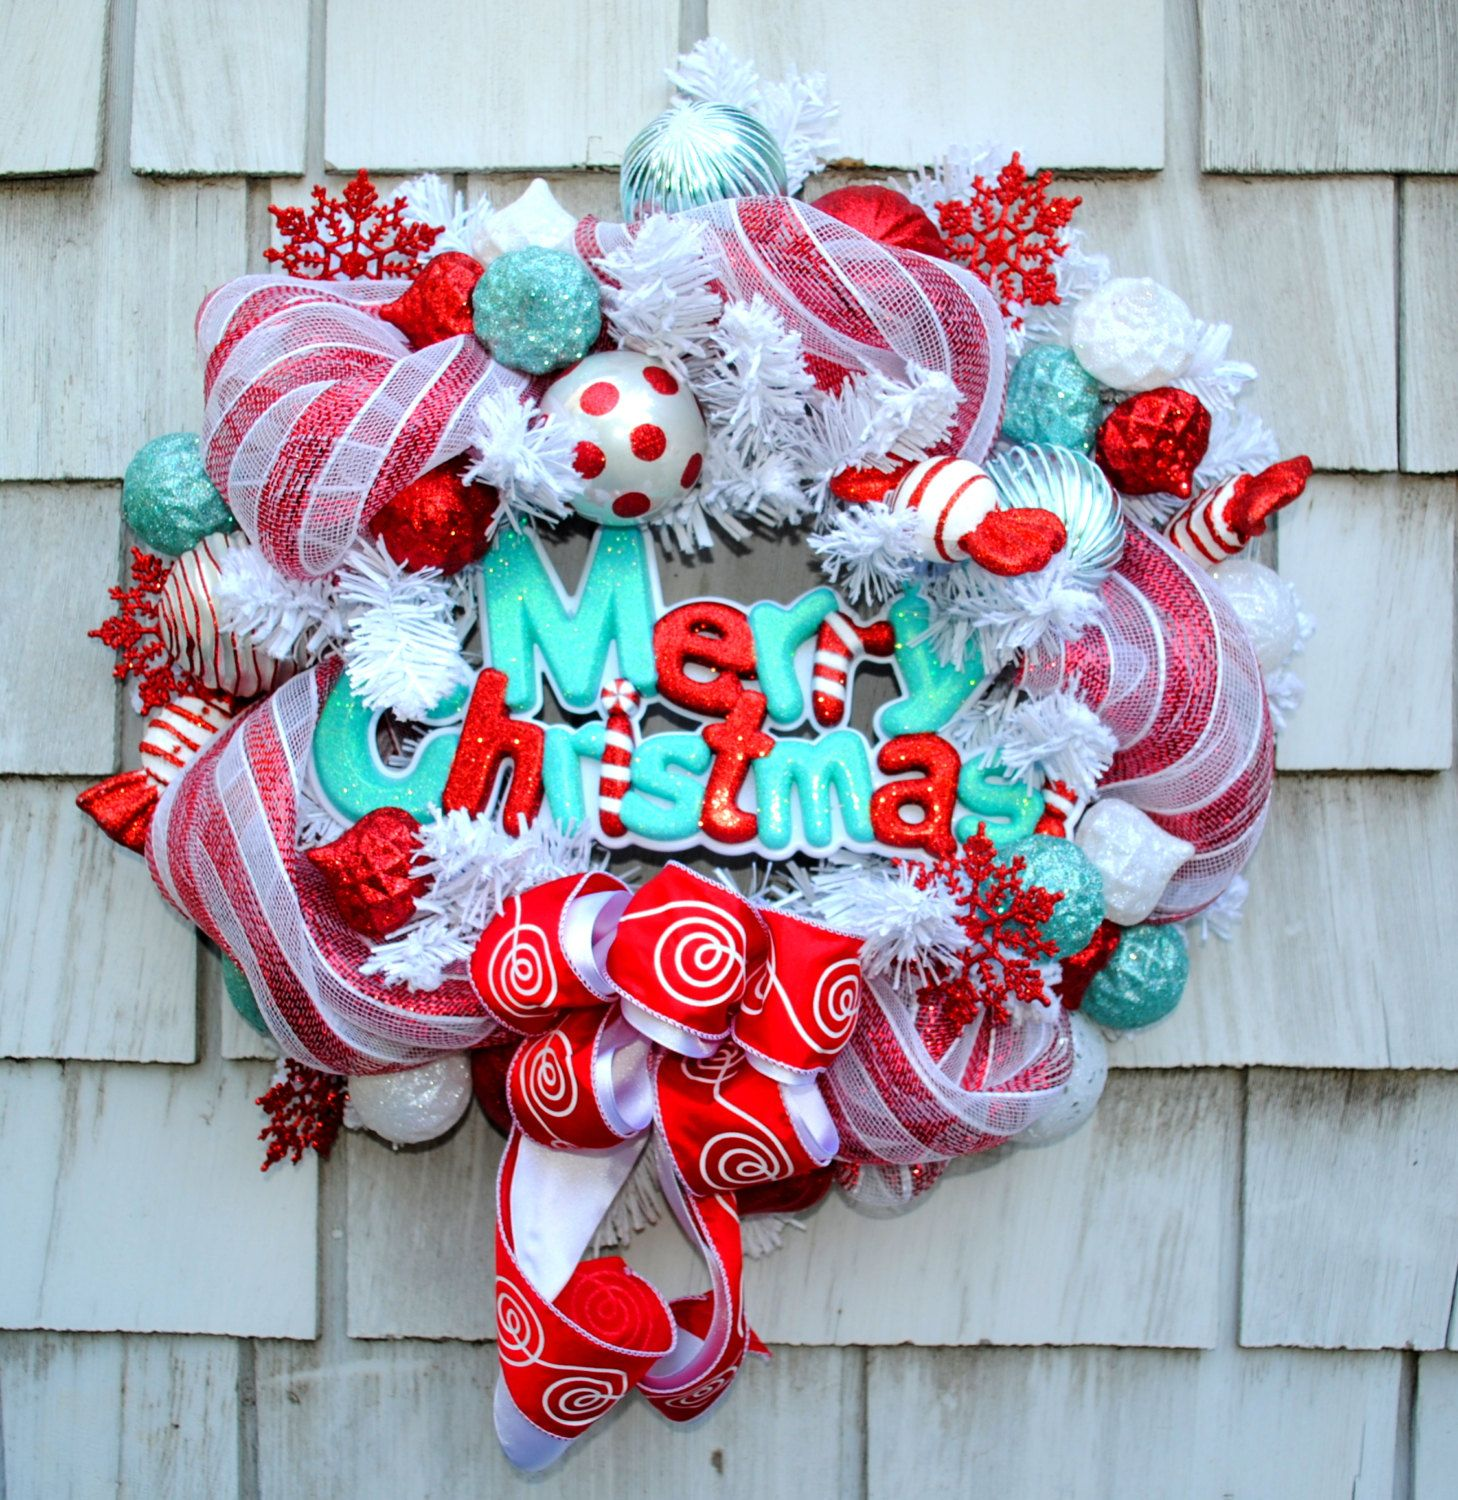 Red Turquoise Not Just For Holiday Decor: Red White And Teal Christmas - Google Search